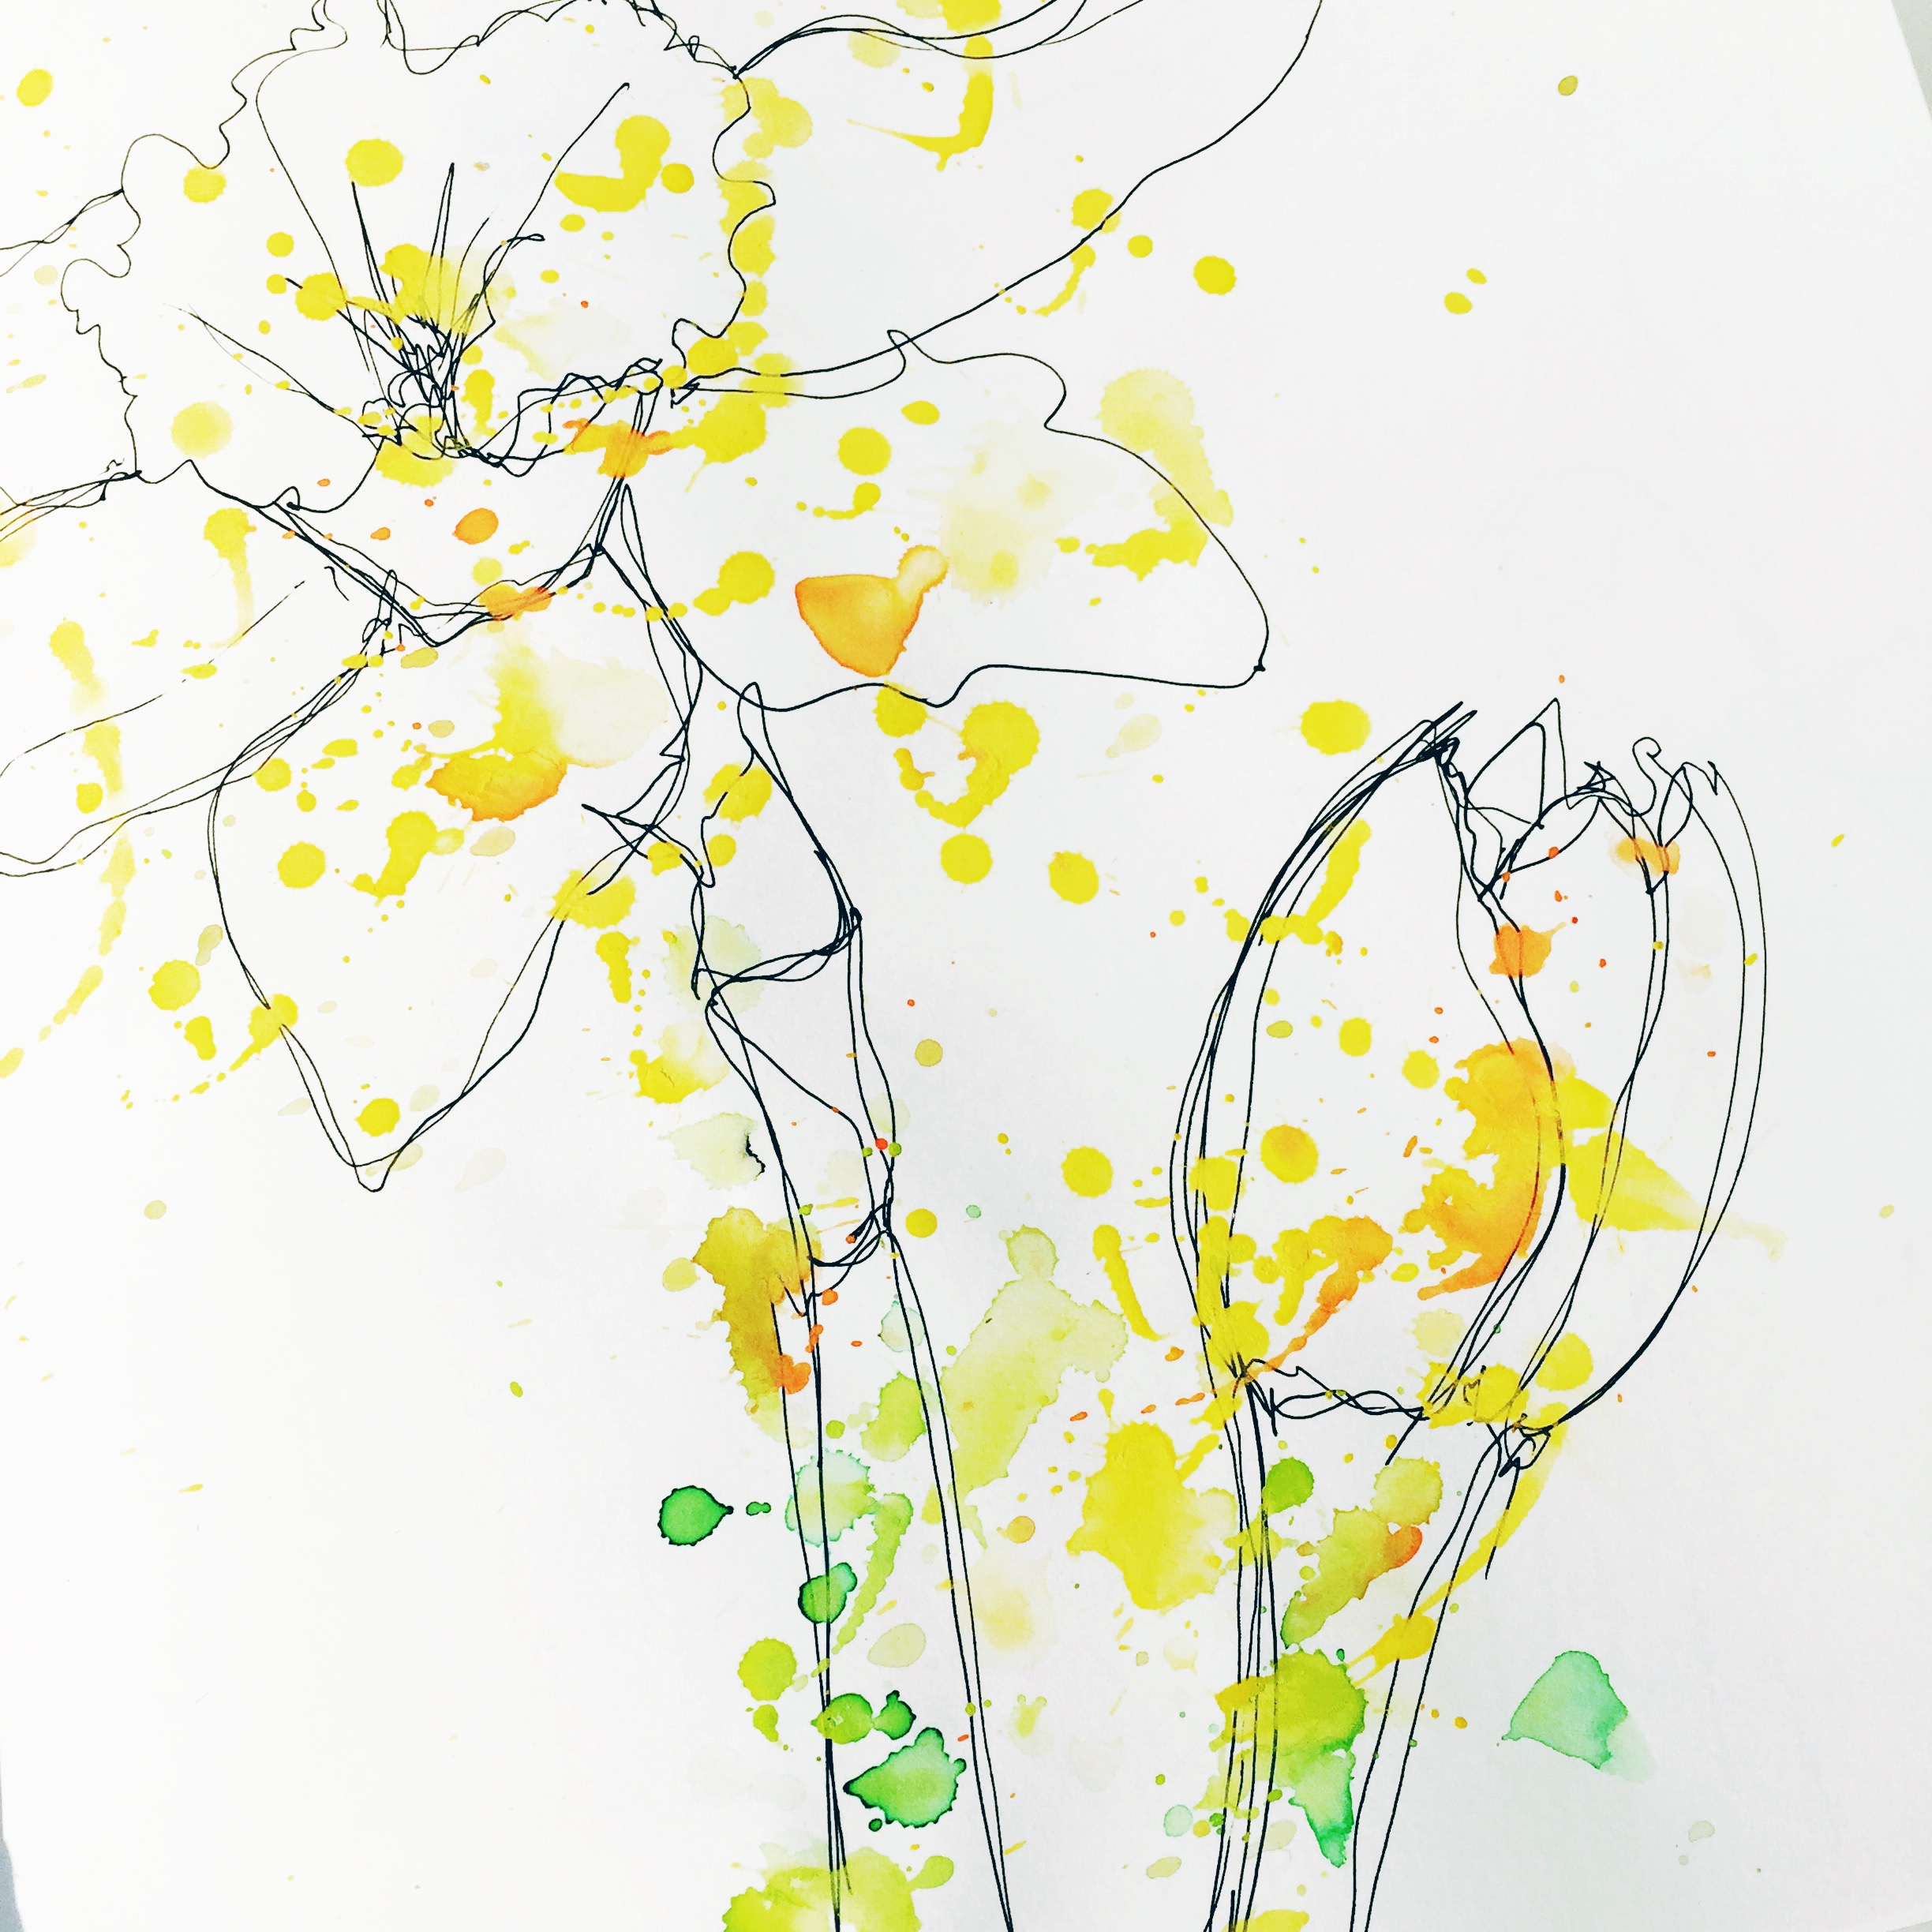 daffodil drawing7